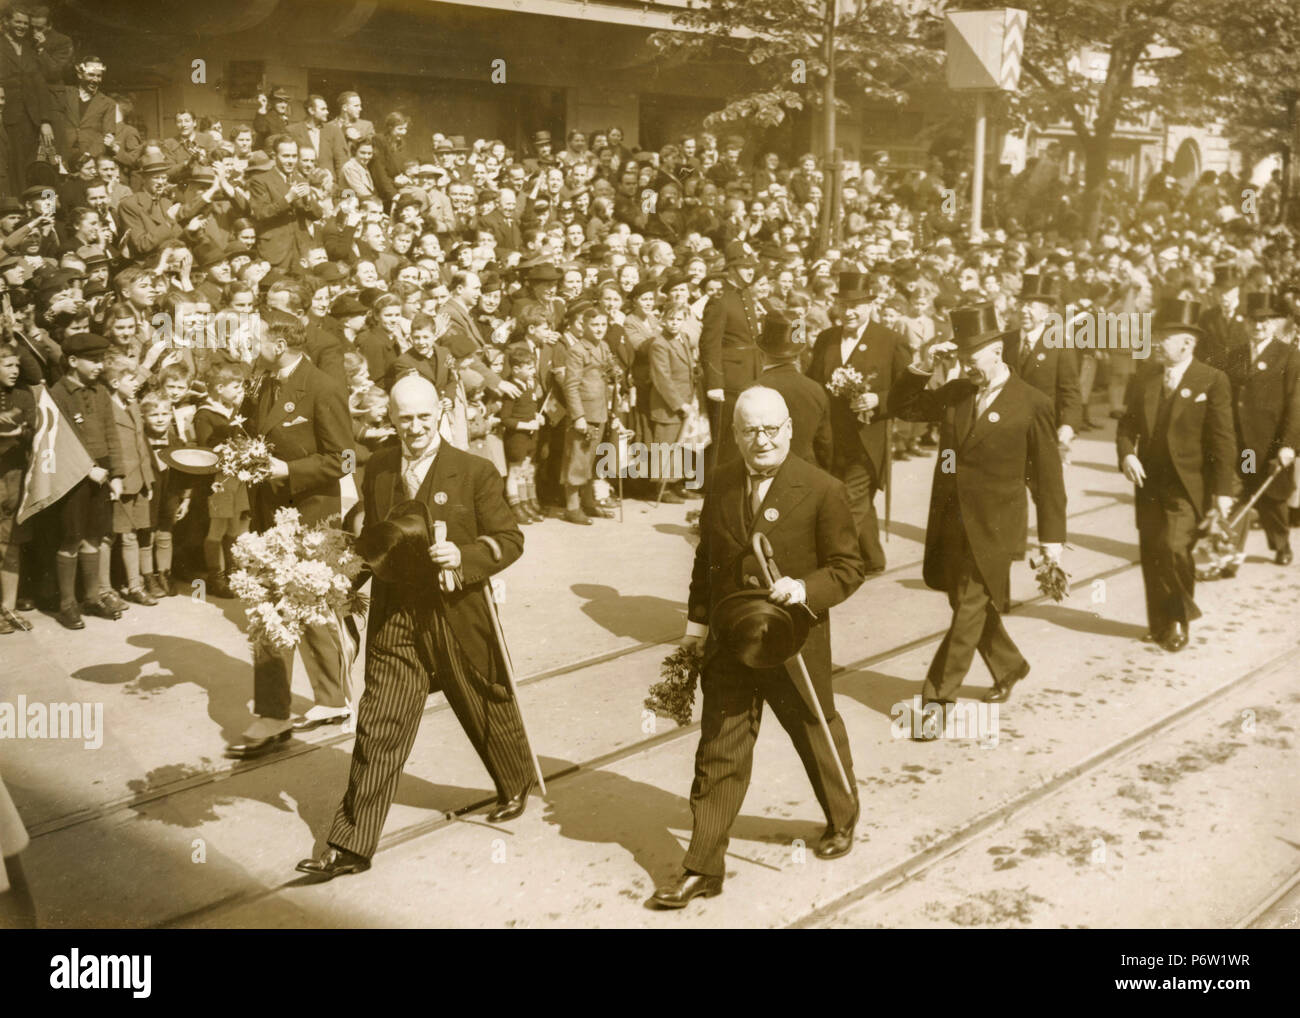 Members of the Swiss government in procession headed by President Philip Etter and Giuseppe Motta, Zurich, Switzerland 1939 - Stock Image